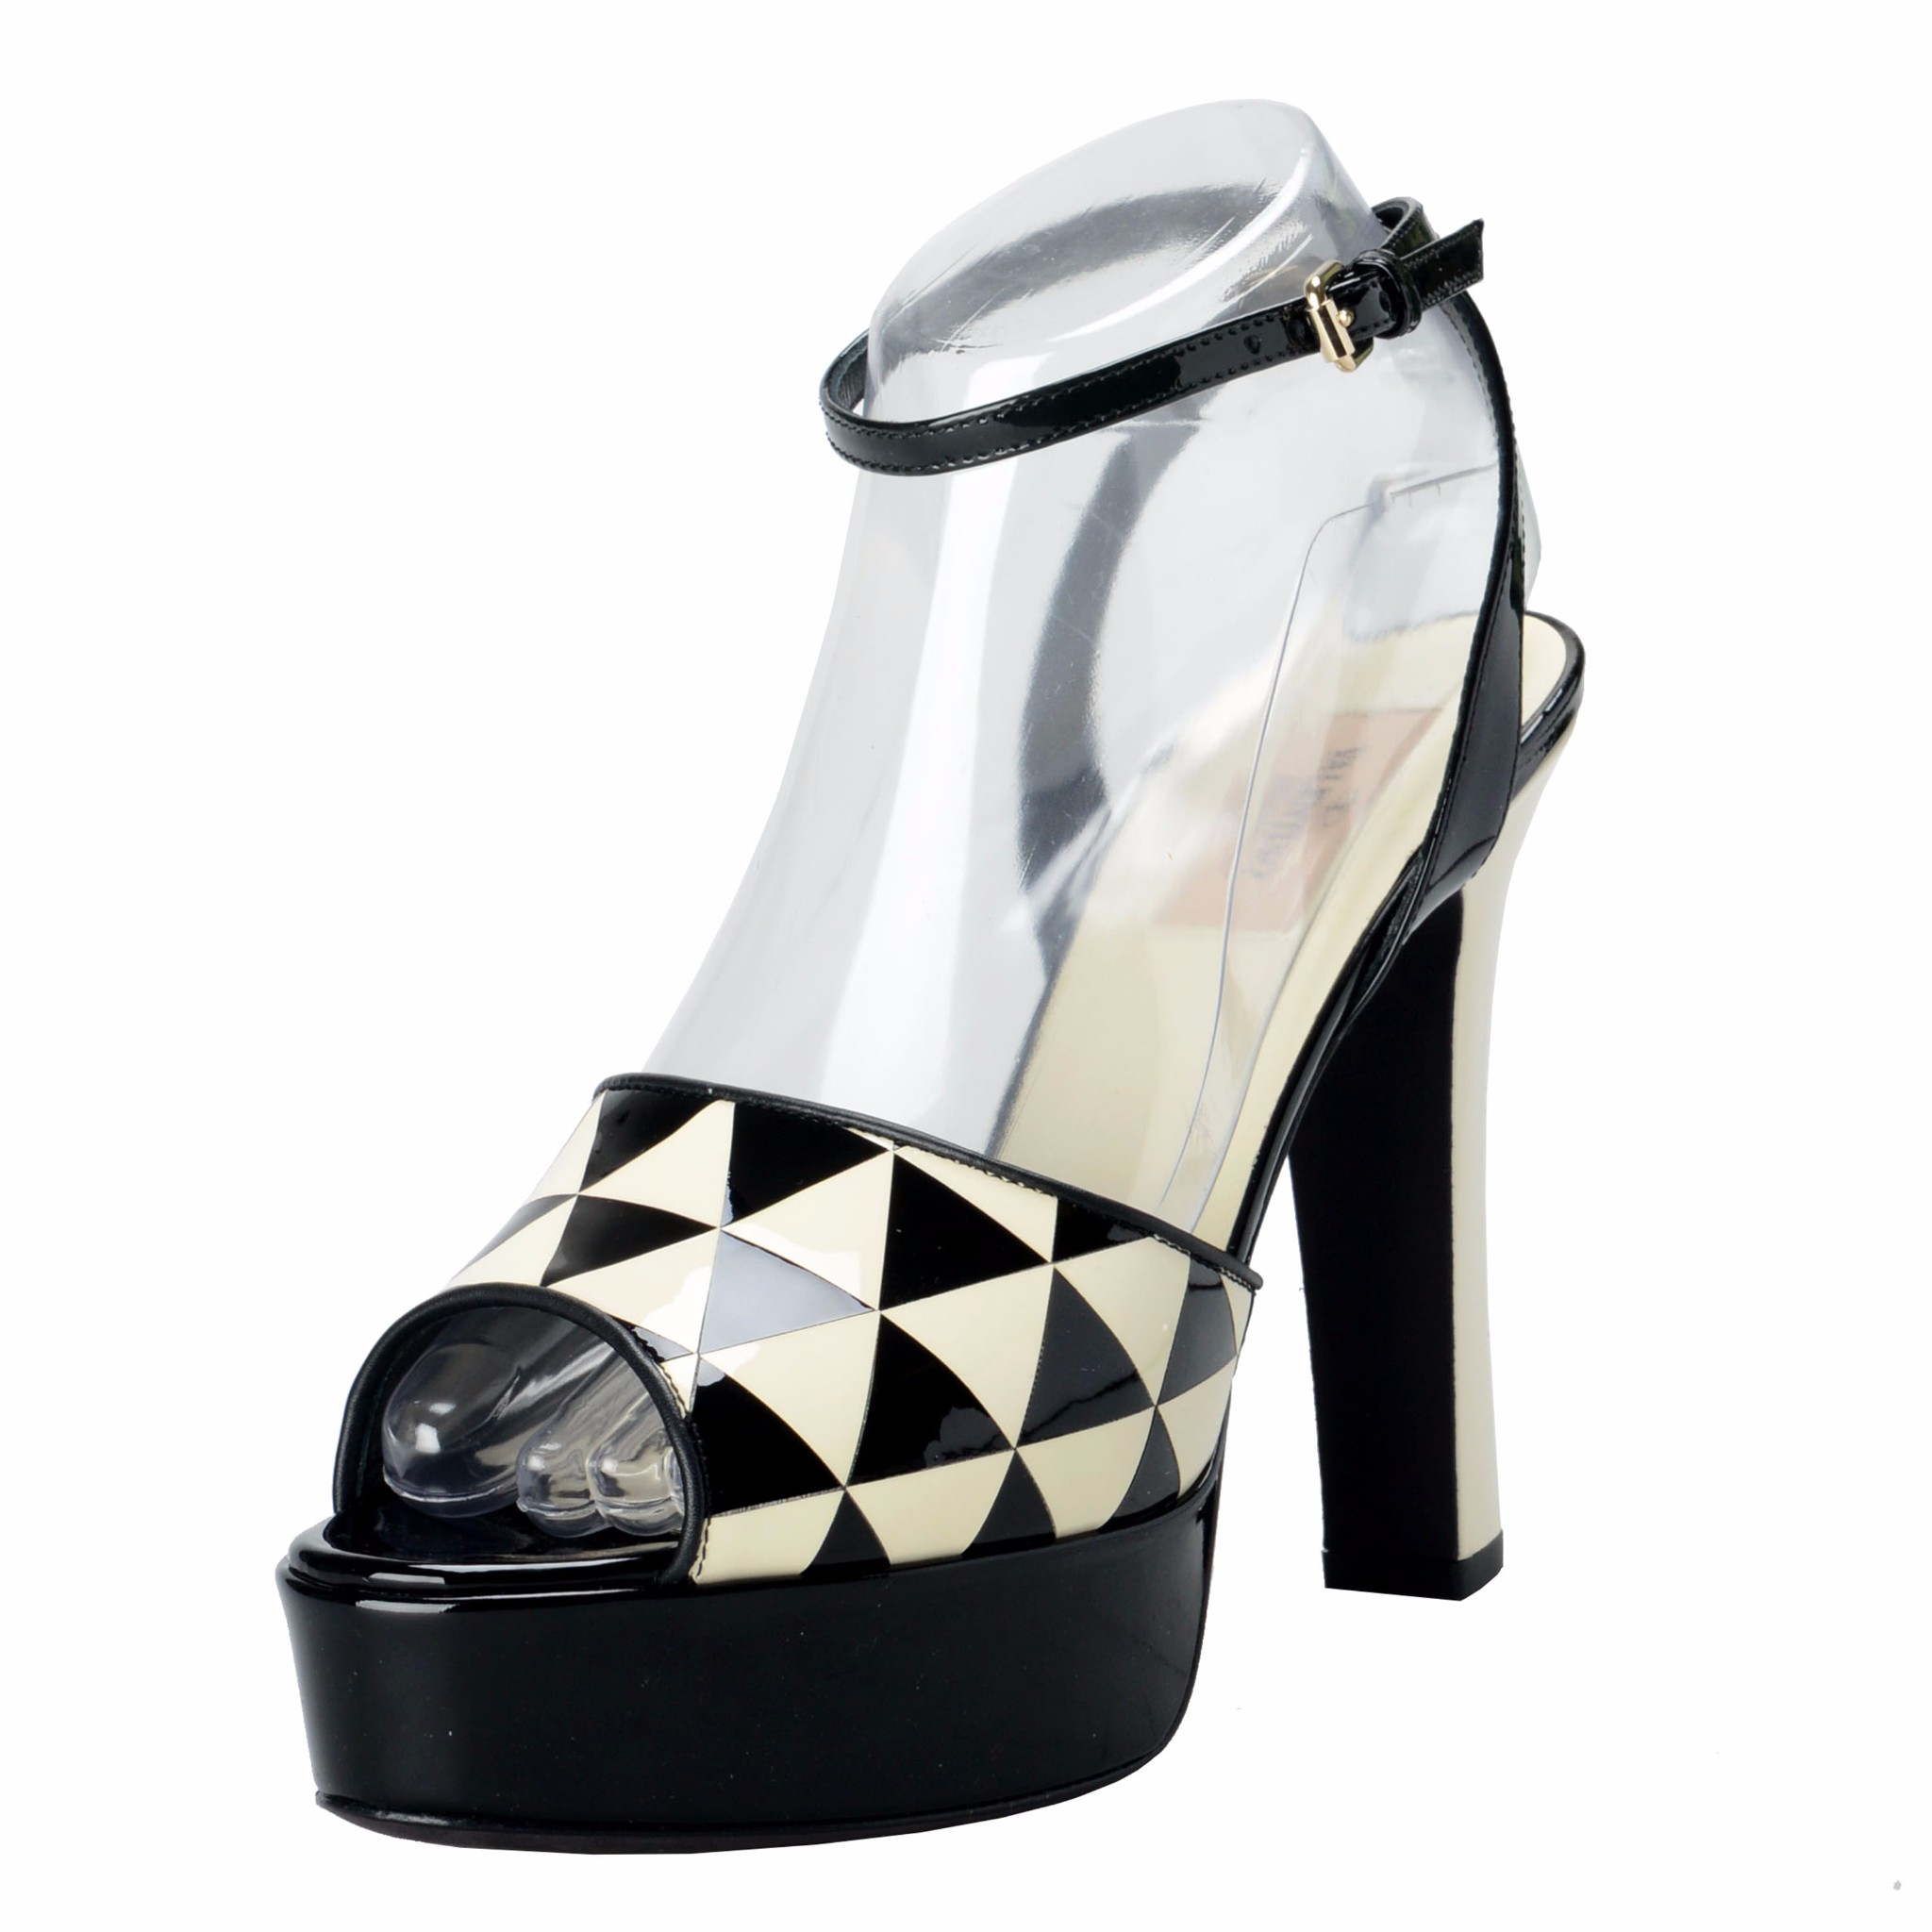 99bf8d896c2 Details about Valentino Garavani Women s Patent Leather Slingbacks High  Heels Open Toe Shoes